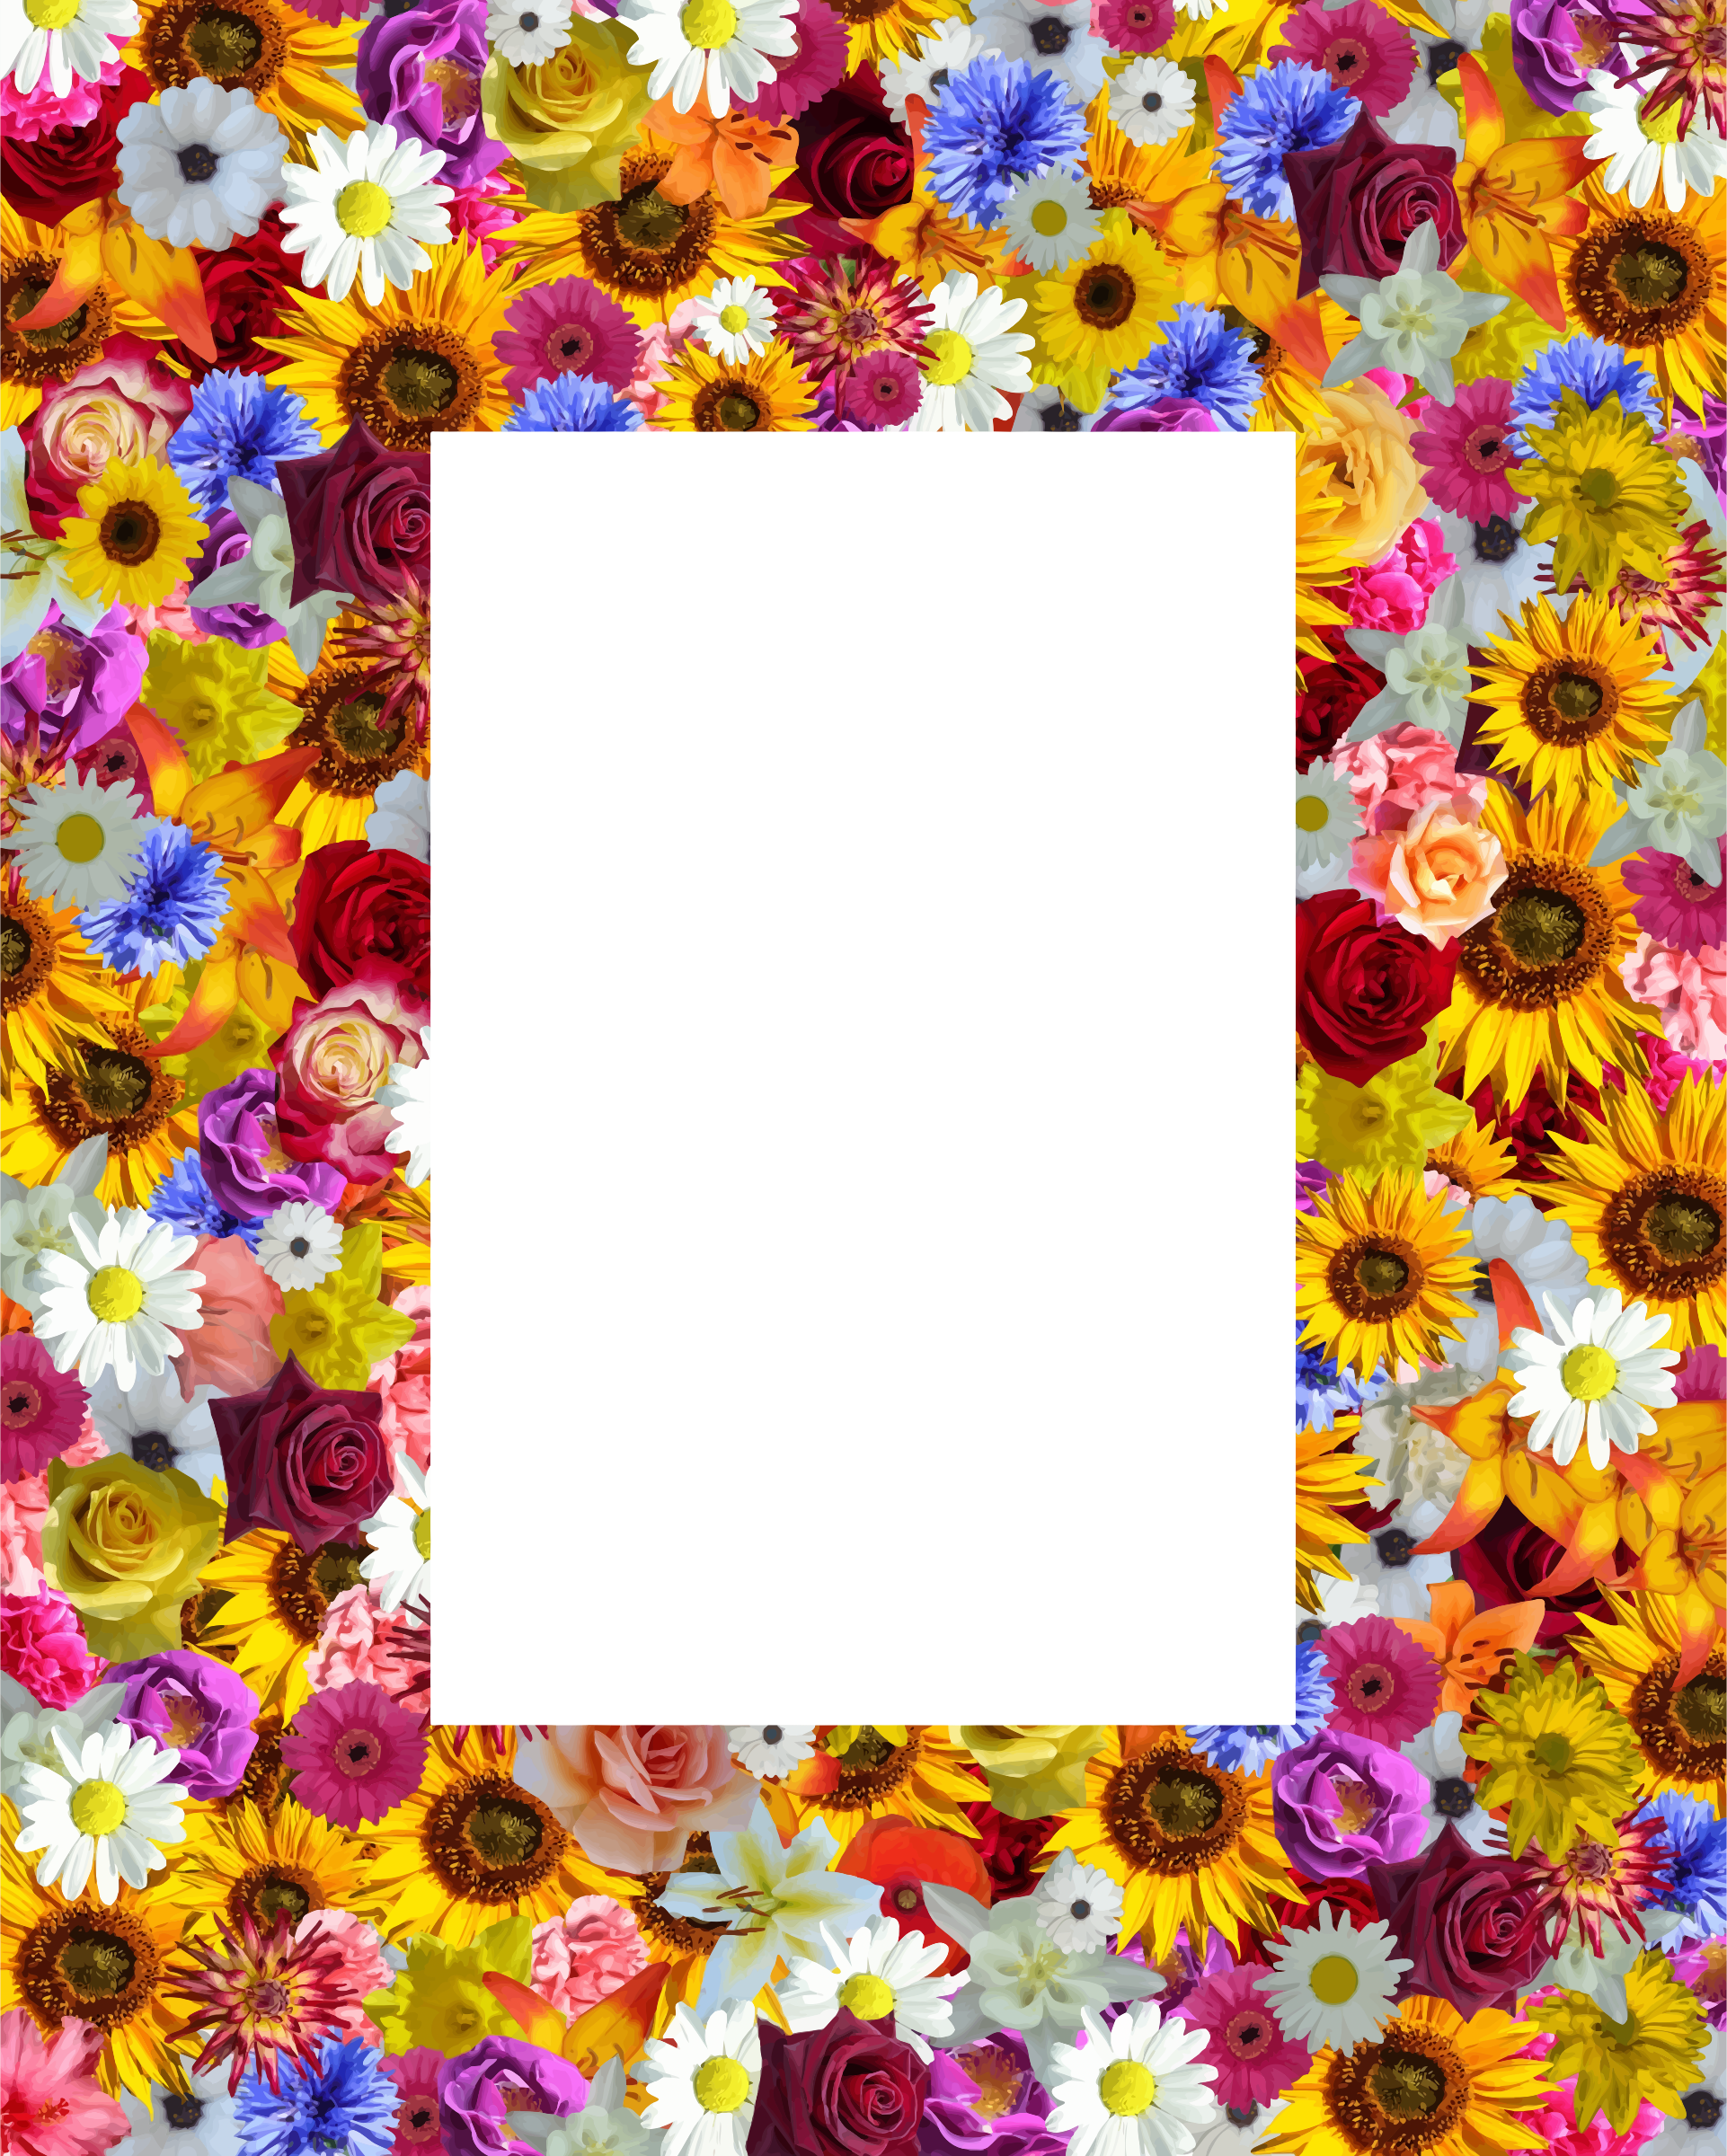 Floral frame 21 by Firkin